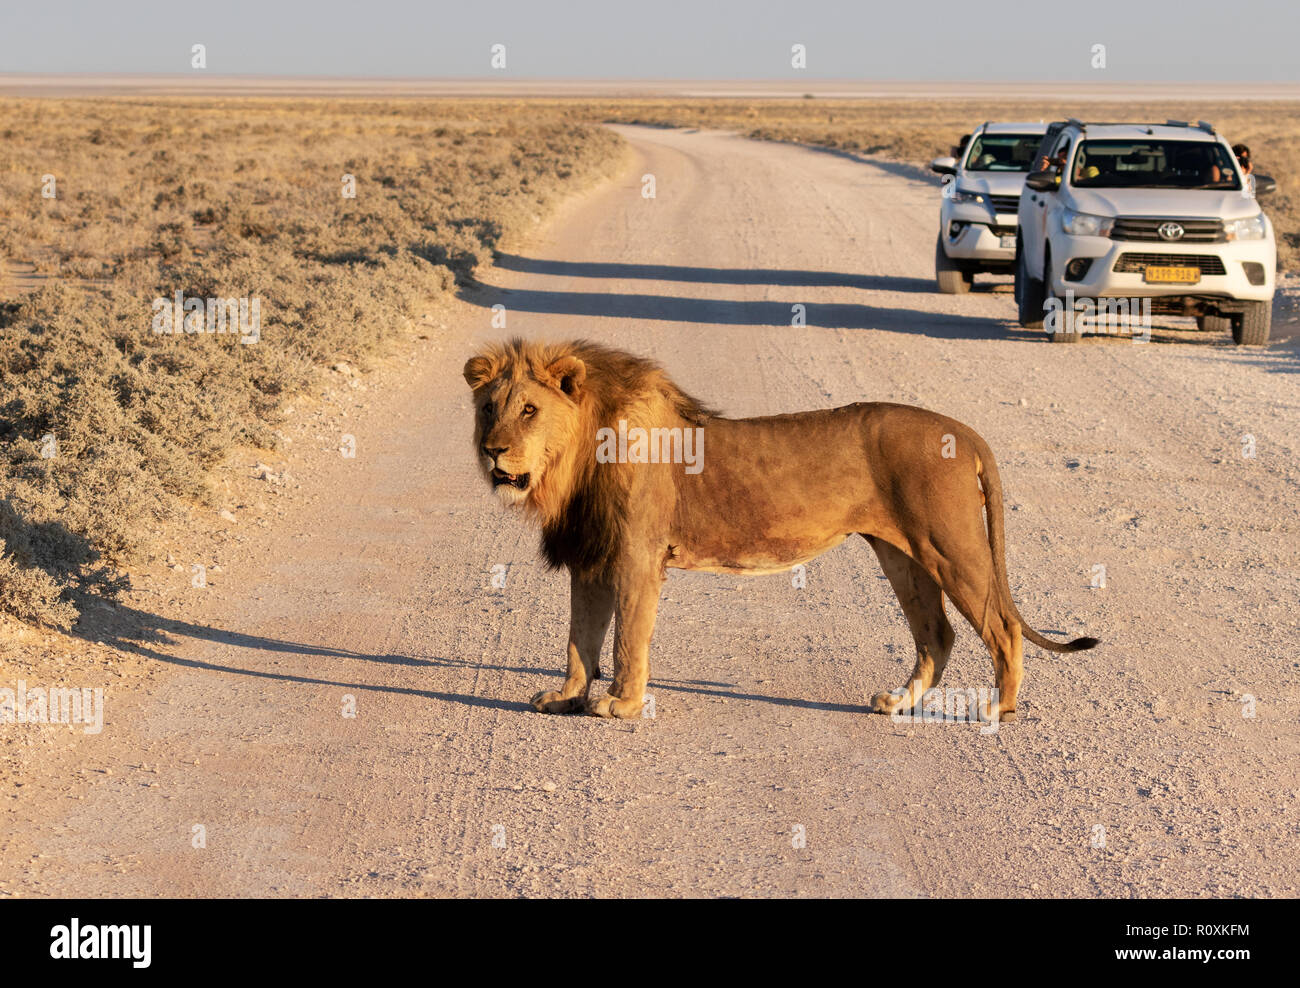 Lion crossing the road - an adult male lion crossing the road in front of cars, Etosha National Park, Namibia Africa - Stock Image